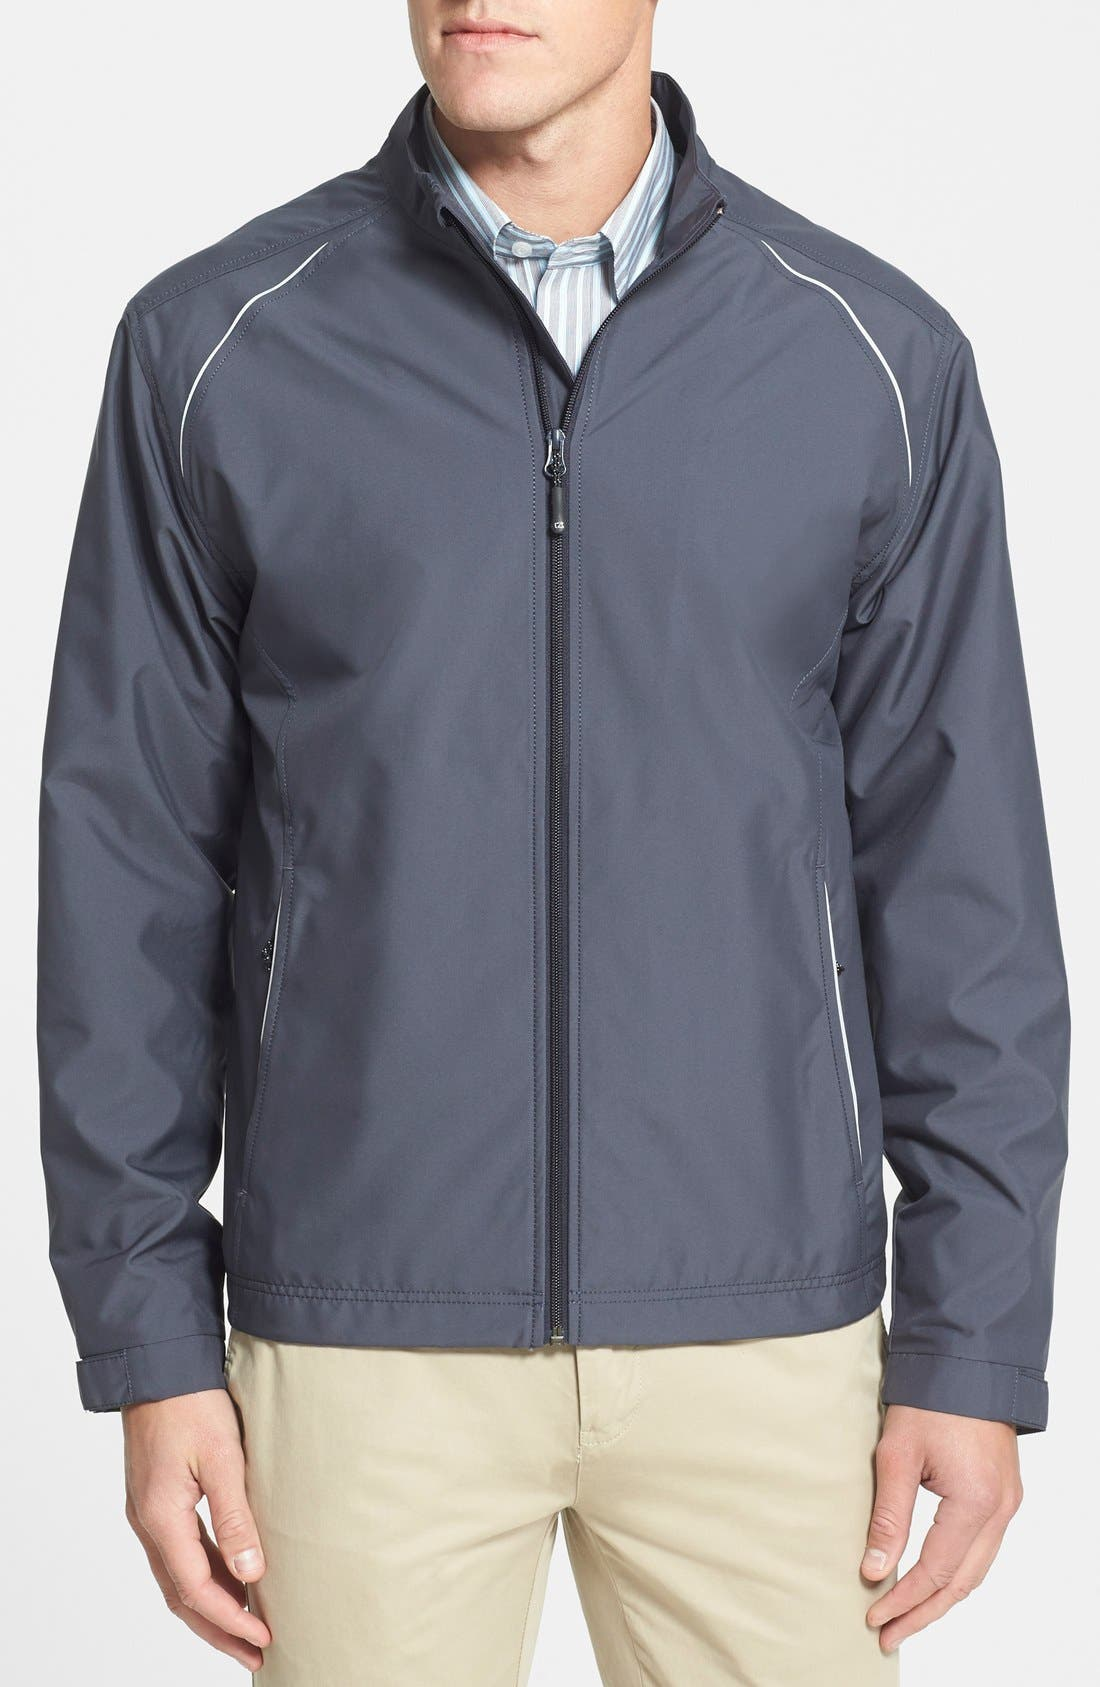 CUTTER & BUCK, Beacon WeatherTec Wind & Water Resistant Jacket, Main thumbnail 1, color, ONYX GREY